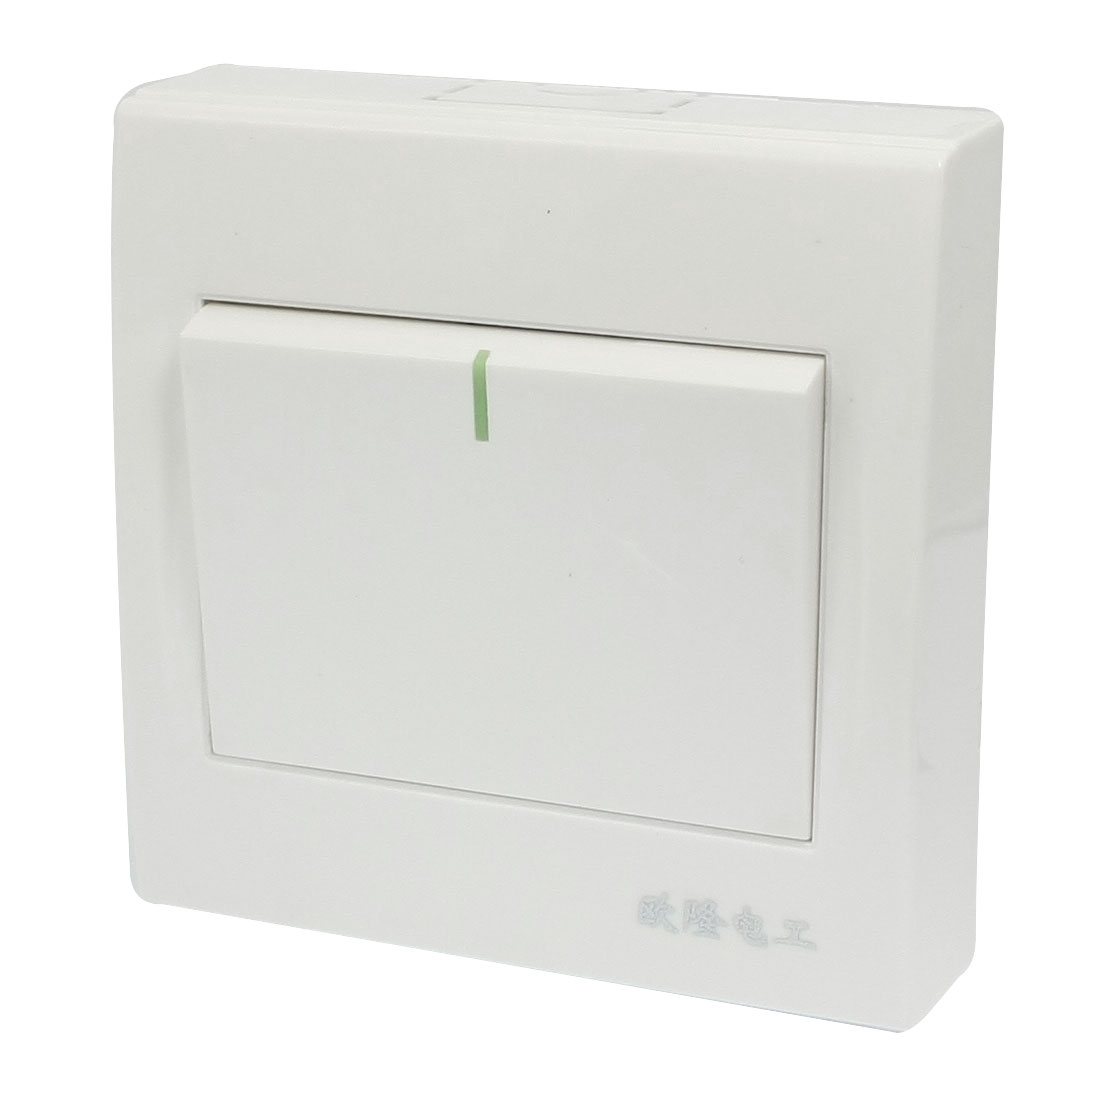 AC 250V 10A 1 Gang White Plastic Housing Control SPST Wall Panel Switch